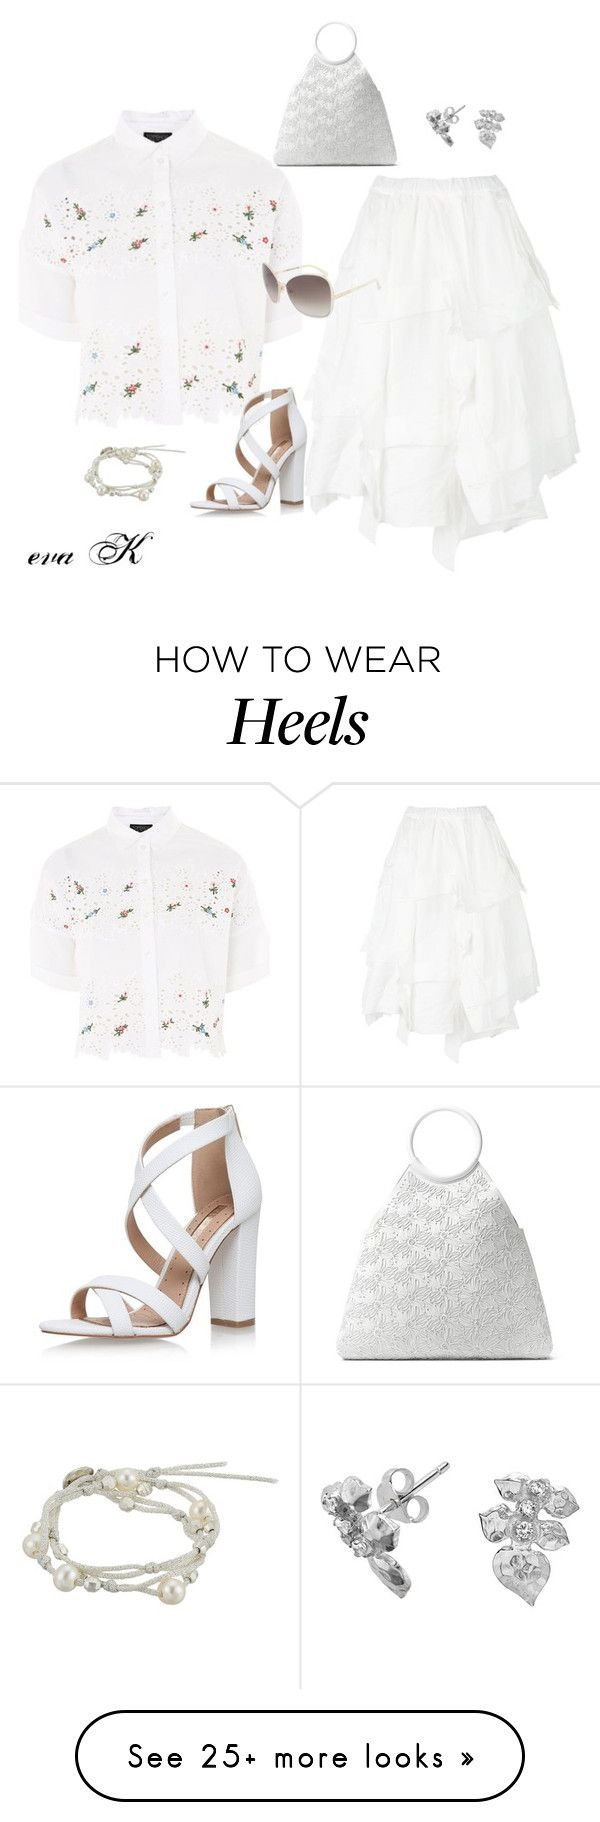 """Summer in white"" by eva-kouliaridou on Polyvore featuring Topshop, Miss KG, Michael Kors, Tom Ford, Dower & Hall and Chan Luu"